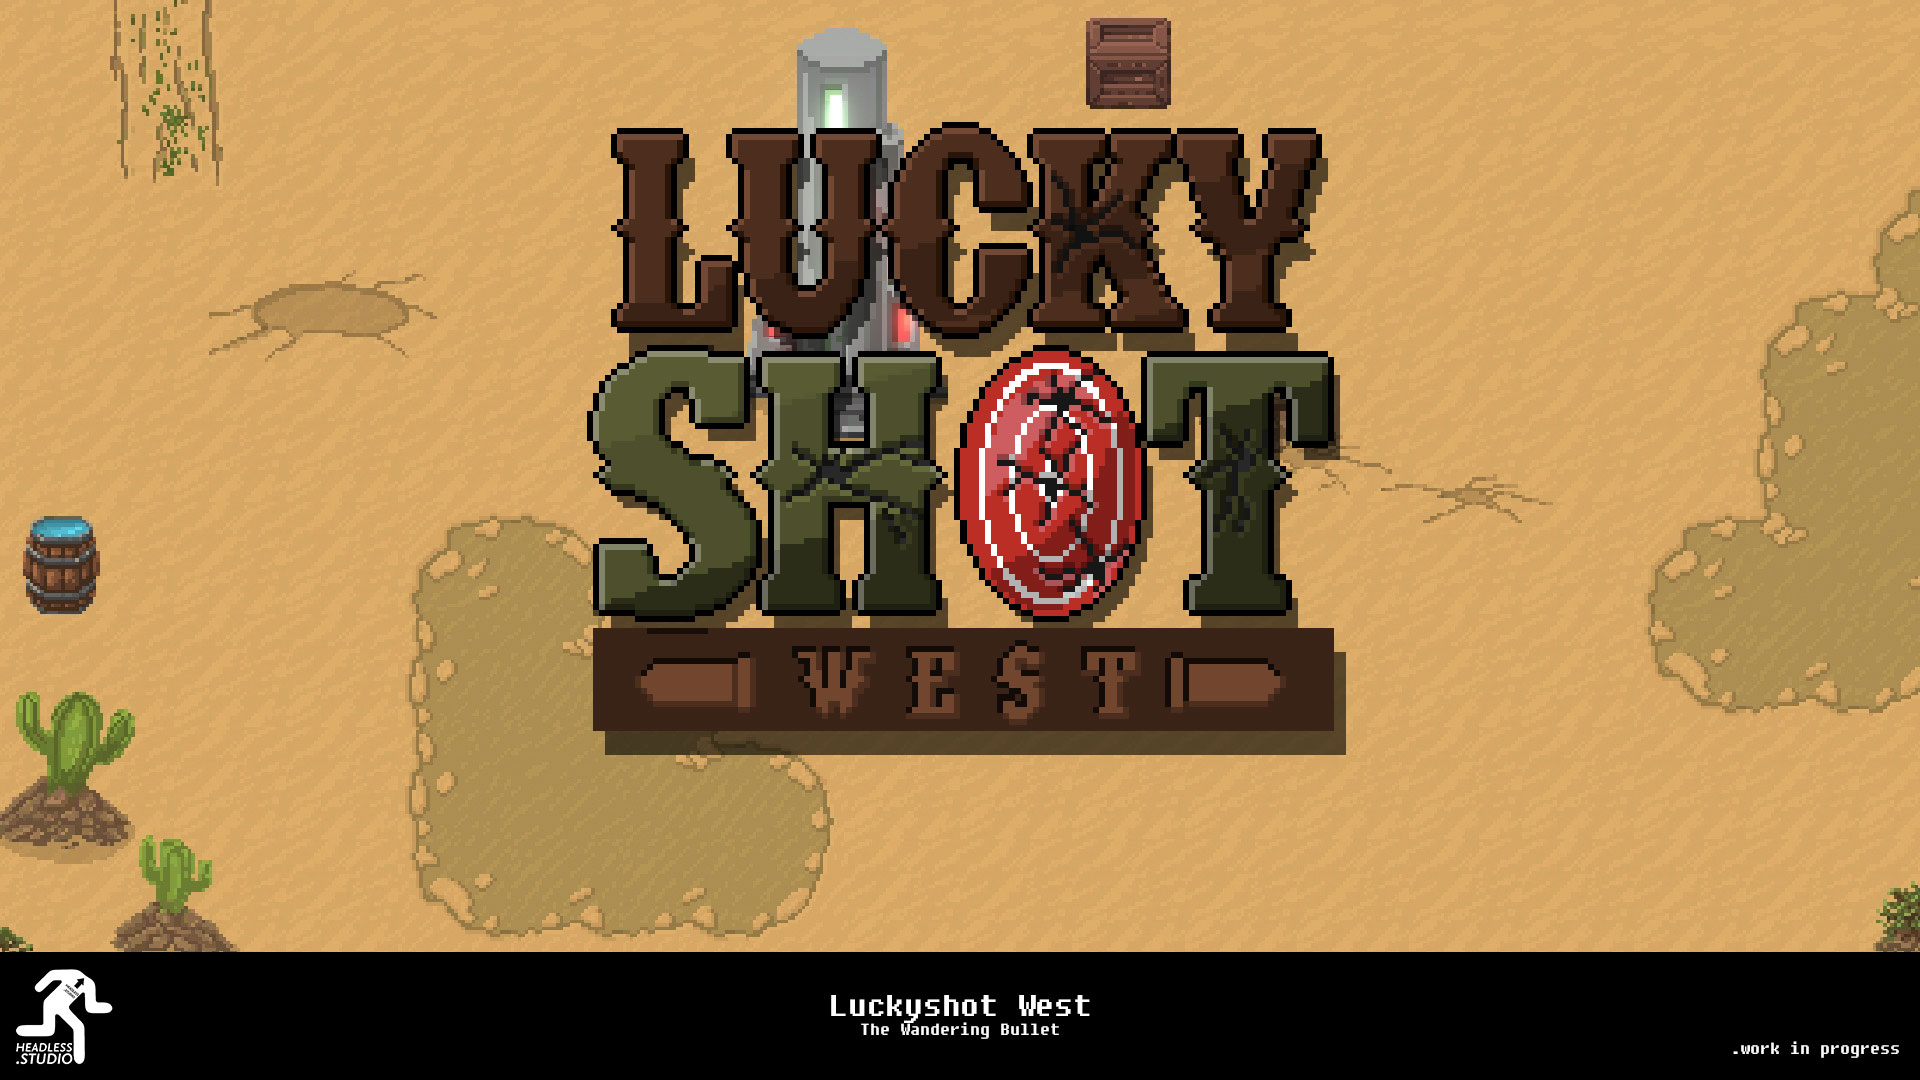 Luckyshot West - The Wandering Bullet